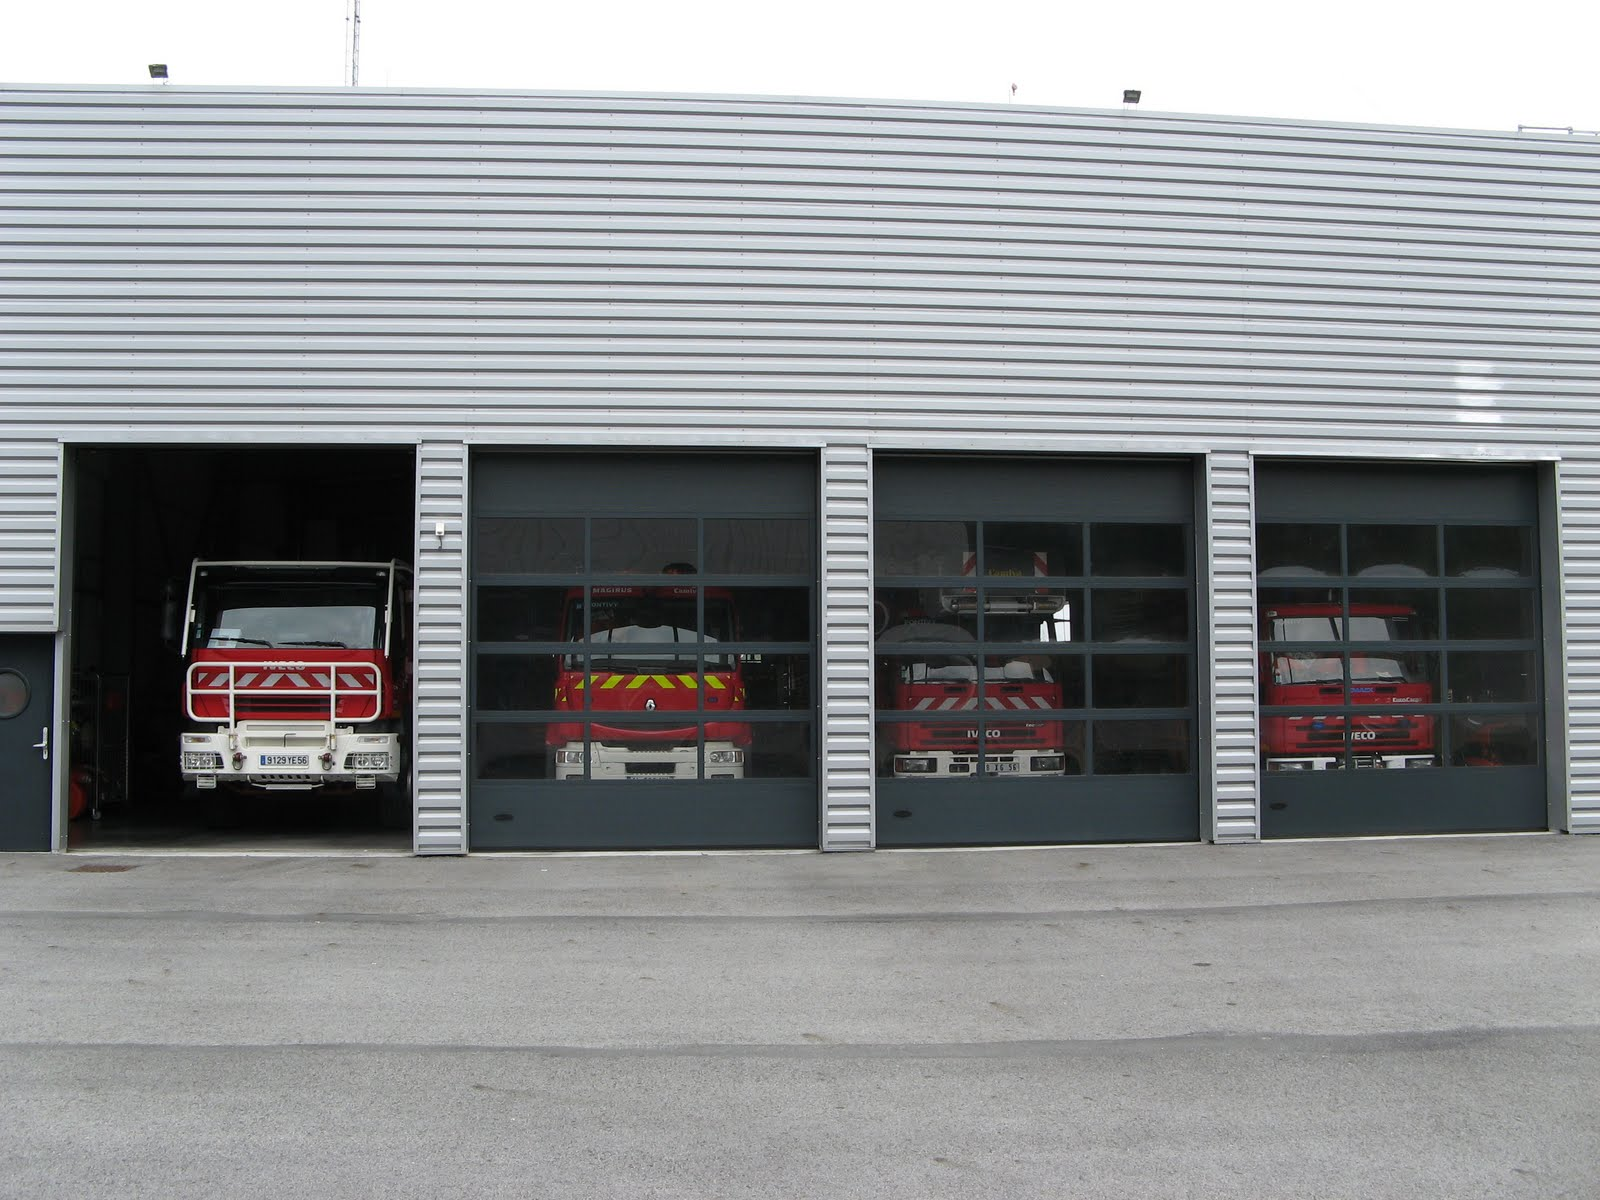 French fire station pontivy 56 inside pontivy fire for Bureau 56 pontivy